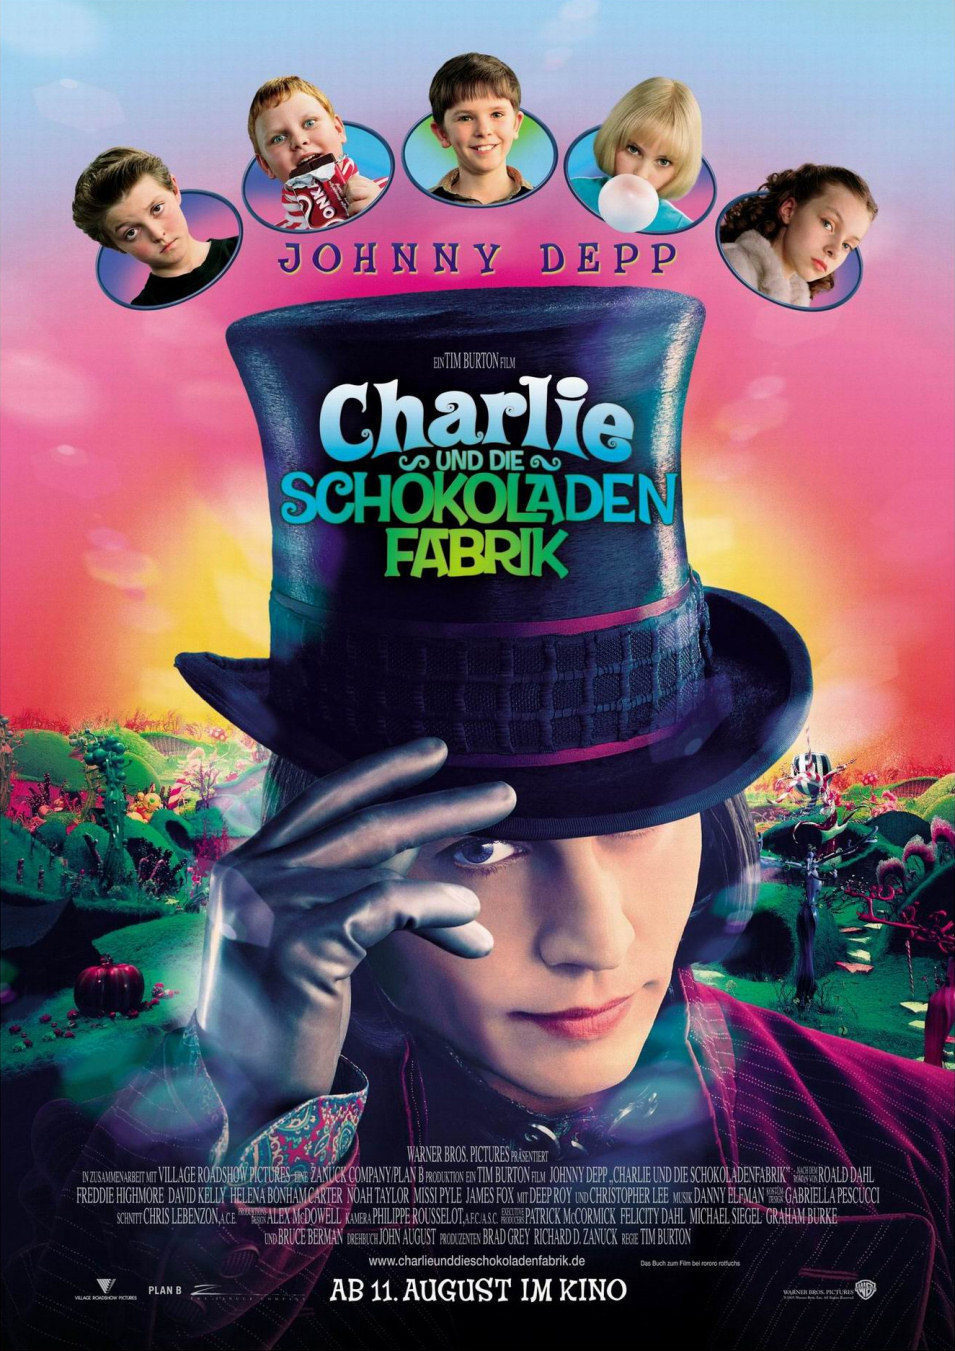 Alemania poster for Charlie and the chocolate factory